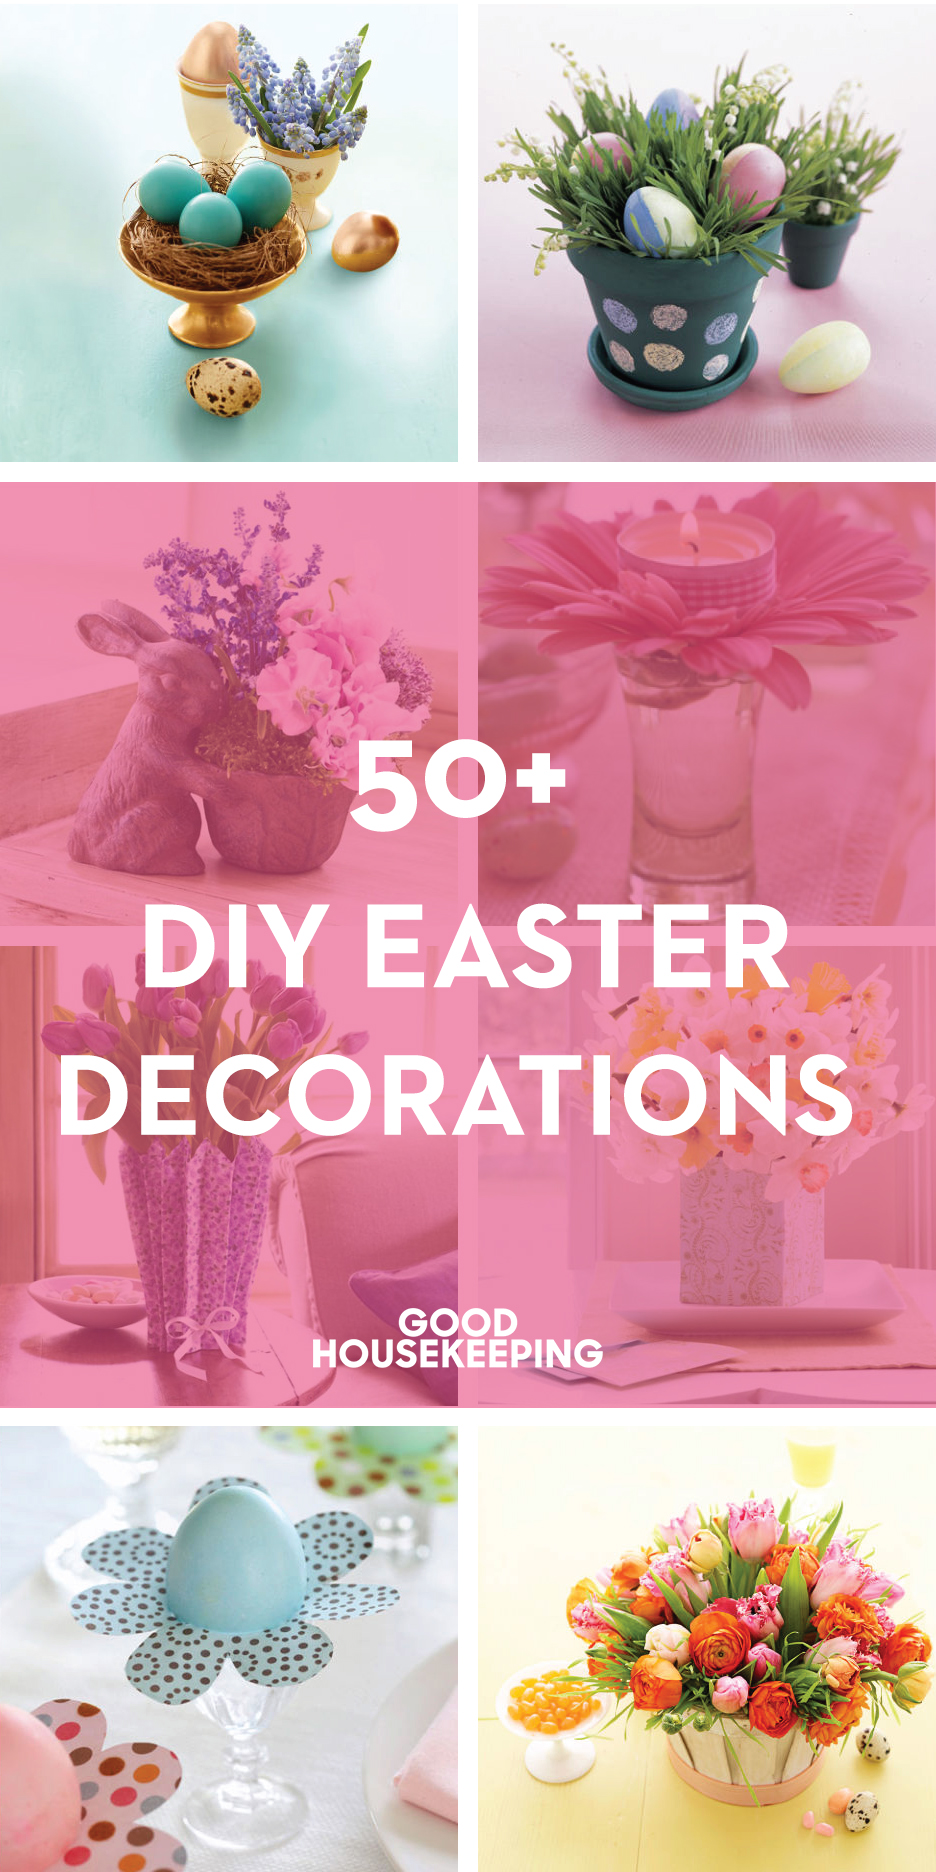 80 DIY Easter Decorations - Ideas for Homemade Easter ...